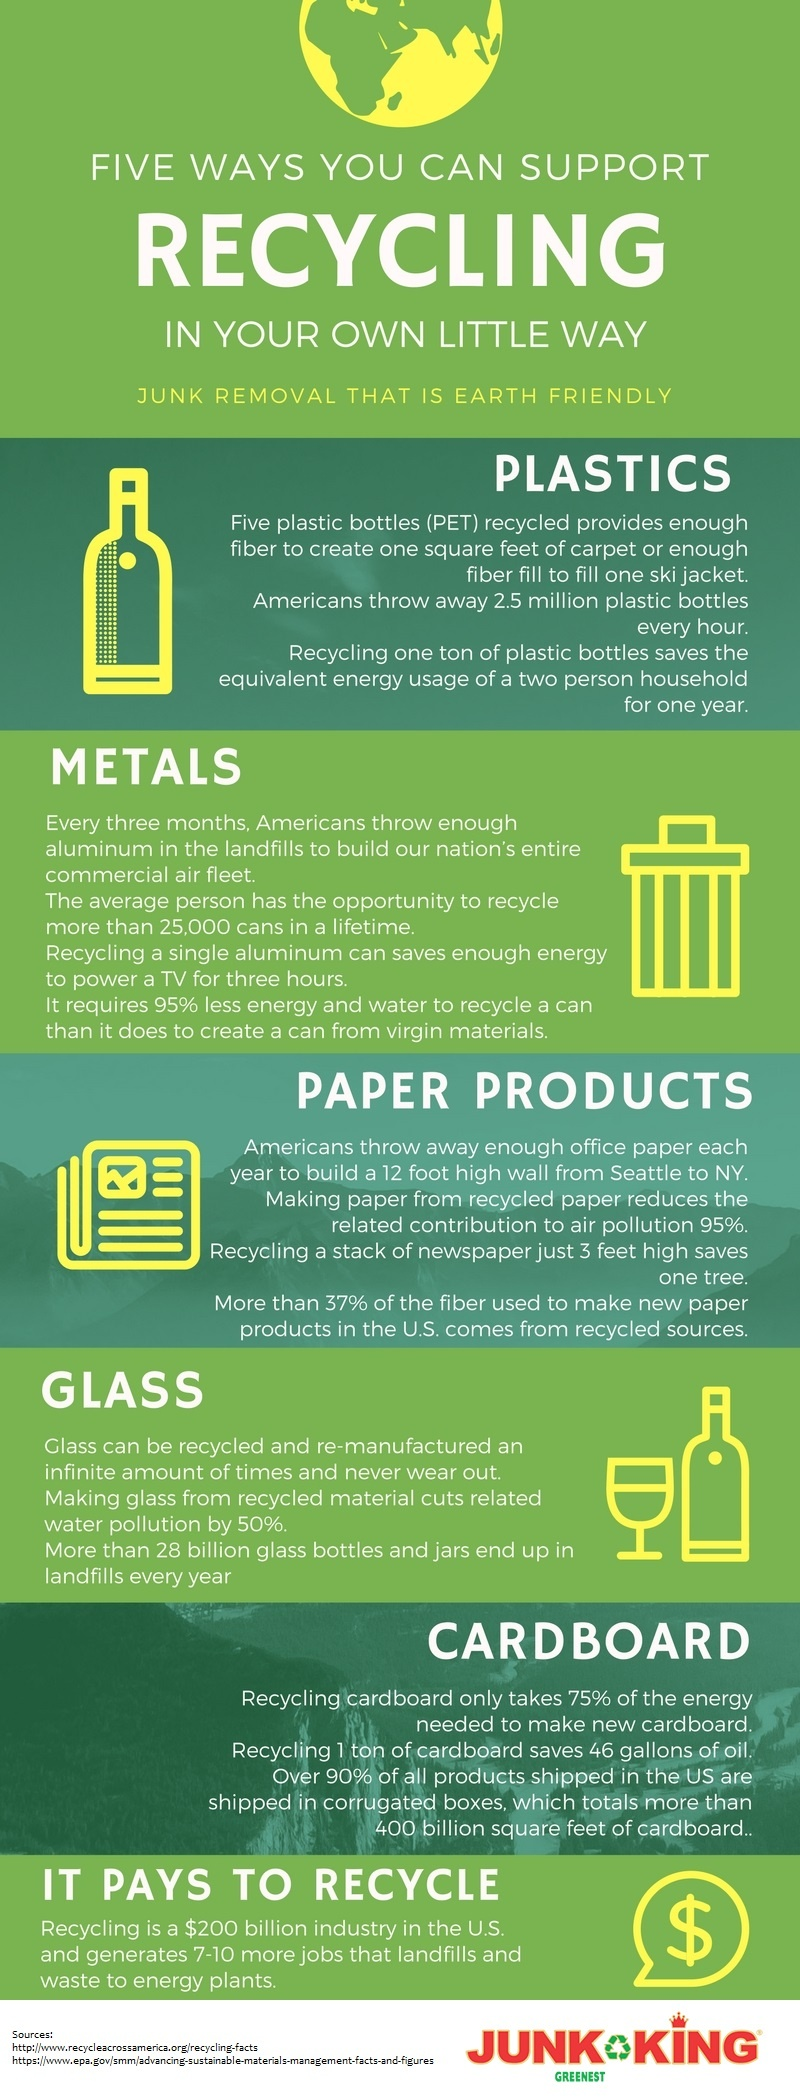 recycling and junk disposal go hand in hand